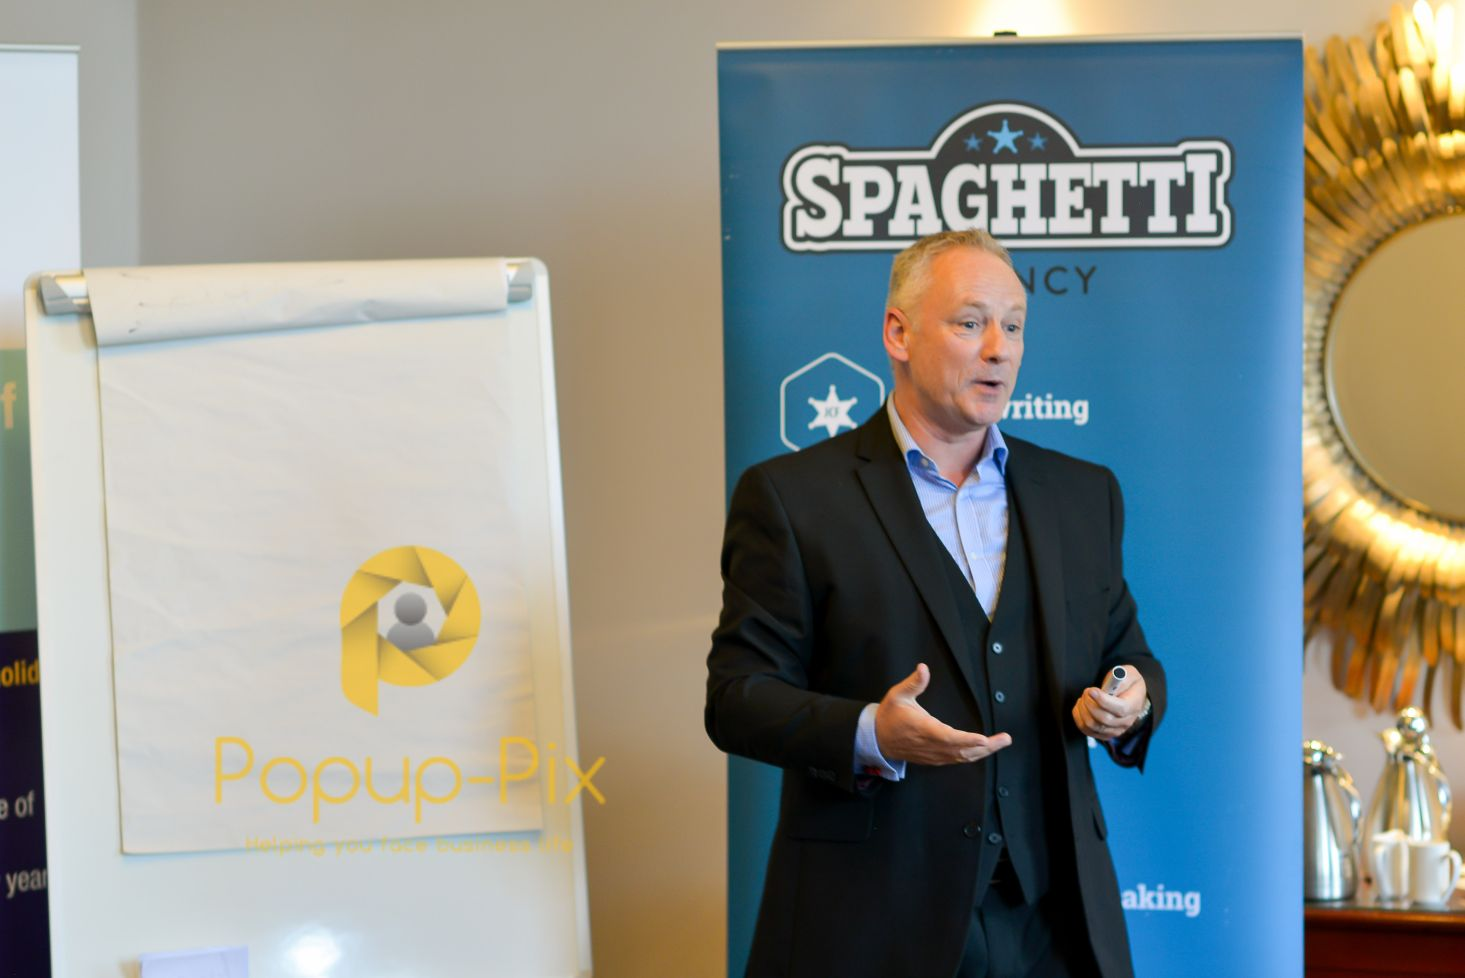 Ian Dickson, speaking at Leamington Evening networking